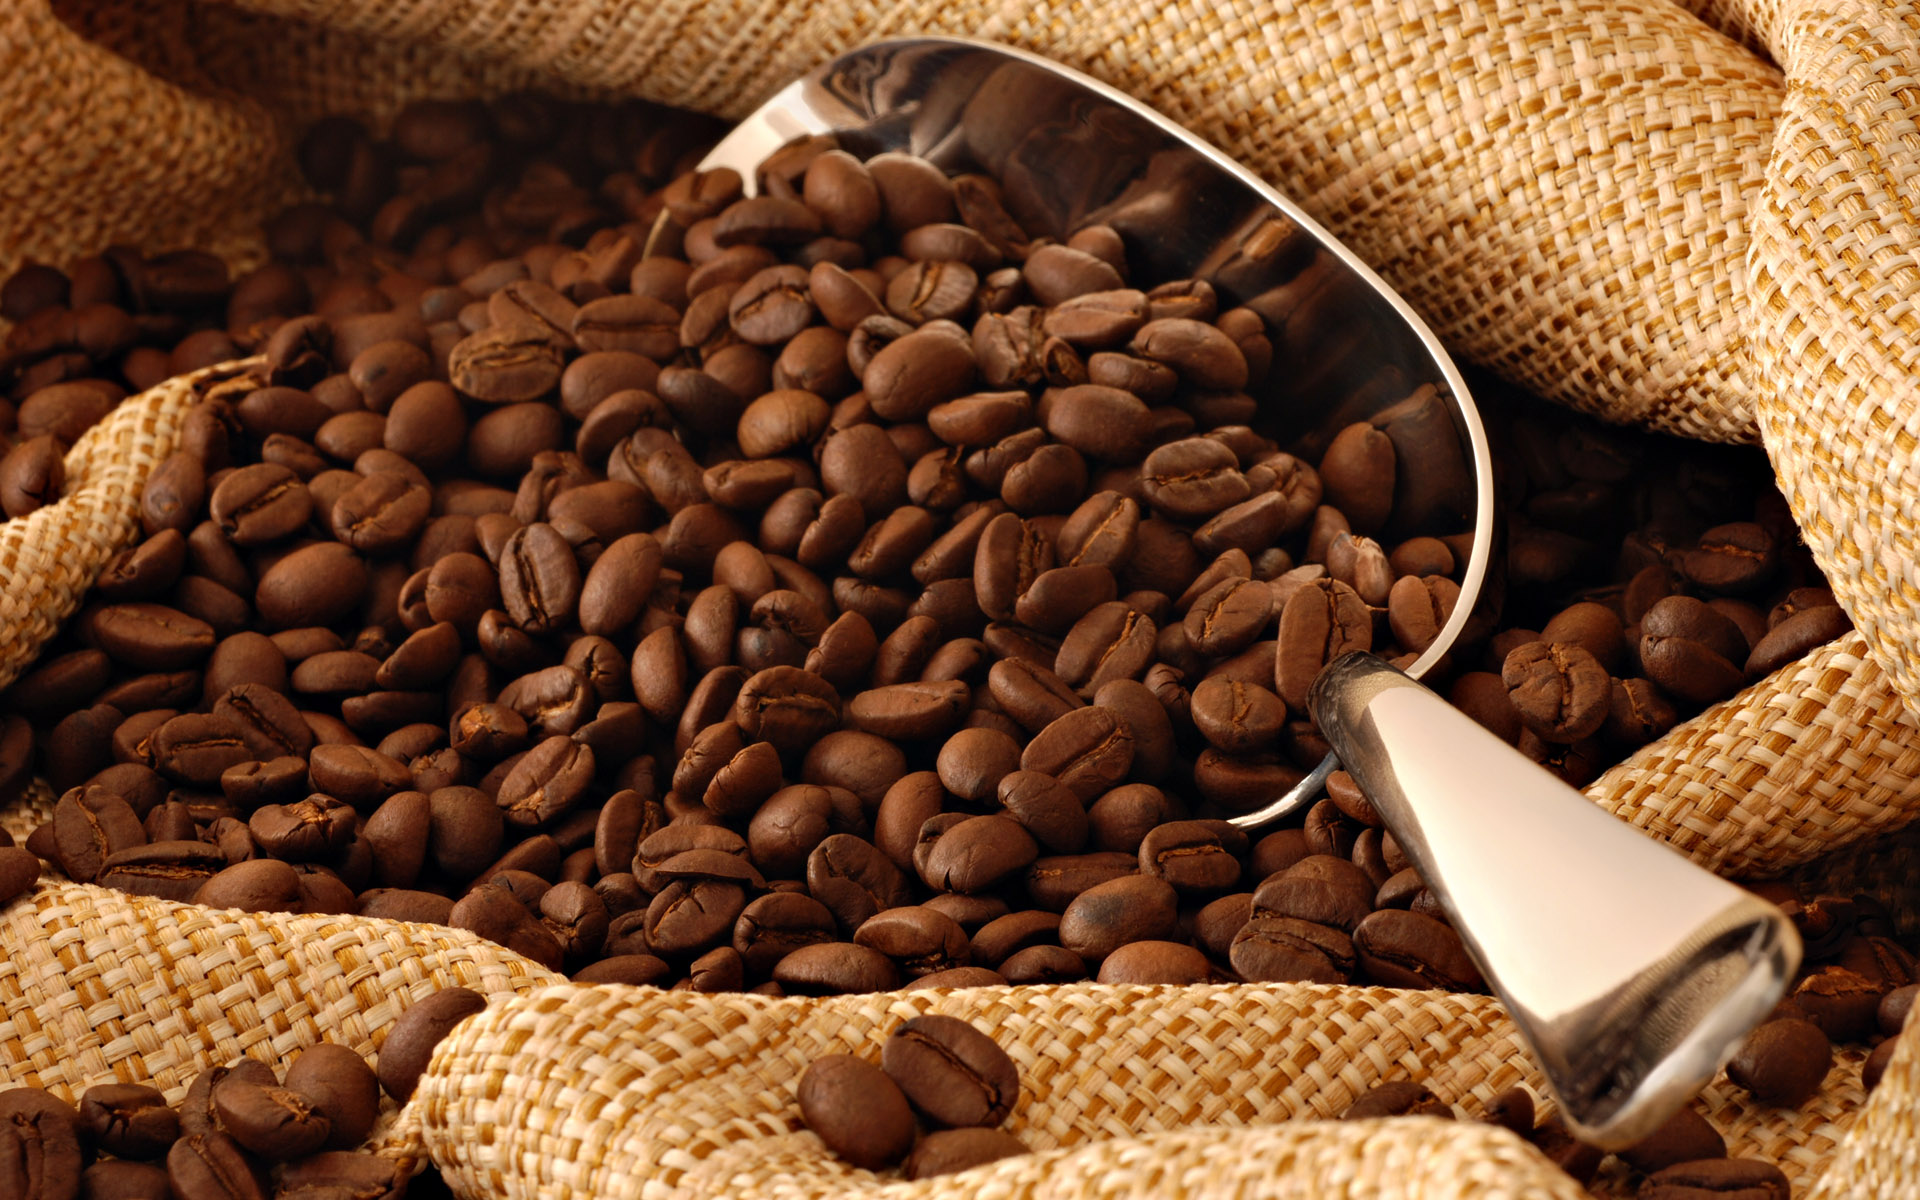 Picture Of Coffee Beans - Coffee Drinker